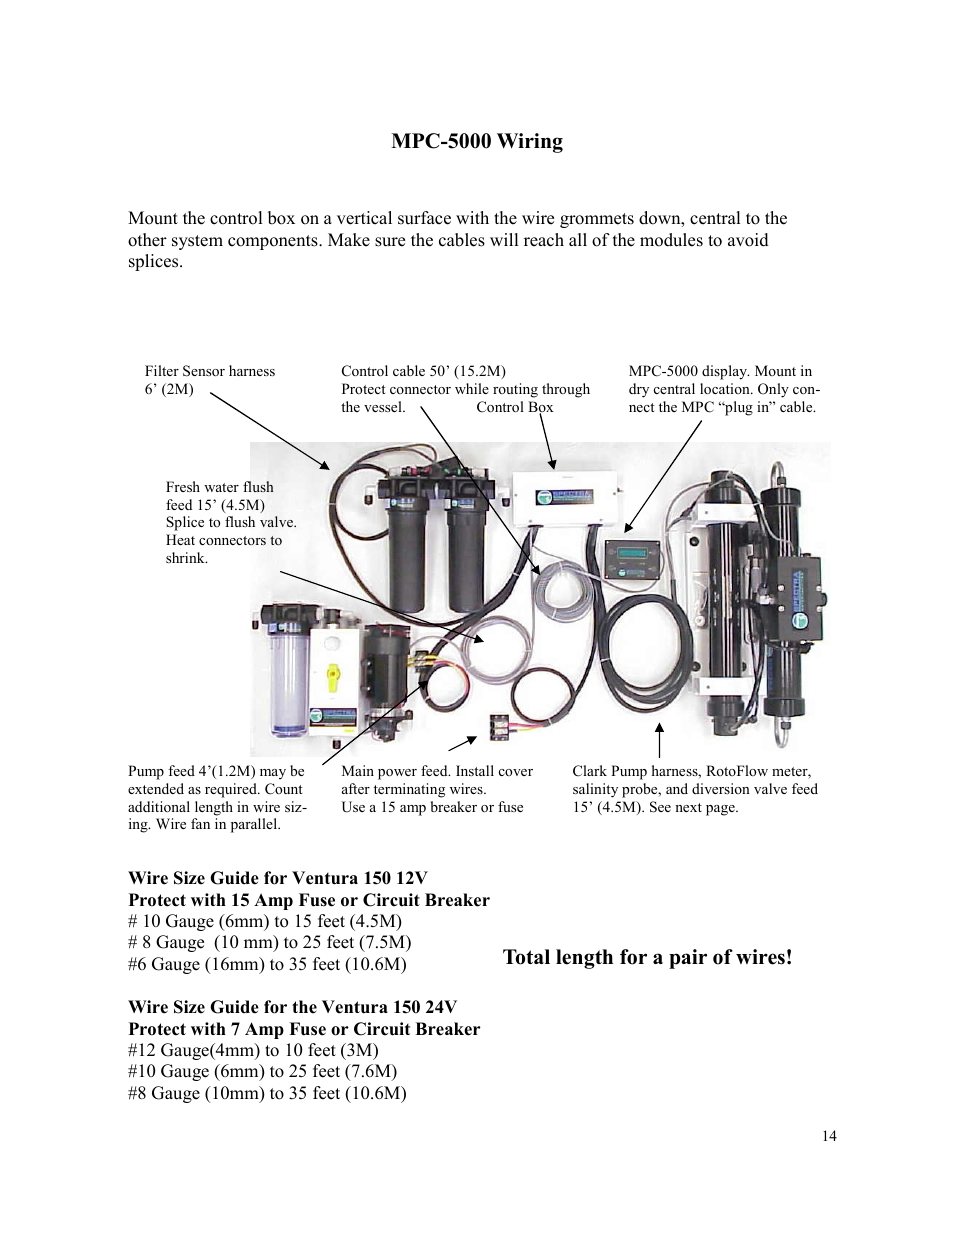 Mpc 5000 Wiring Total Length For A Pair Of Wires Spectra Automotive Grommets Watermakers Ventura 150 User Manual Page 14 54